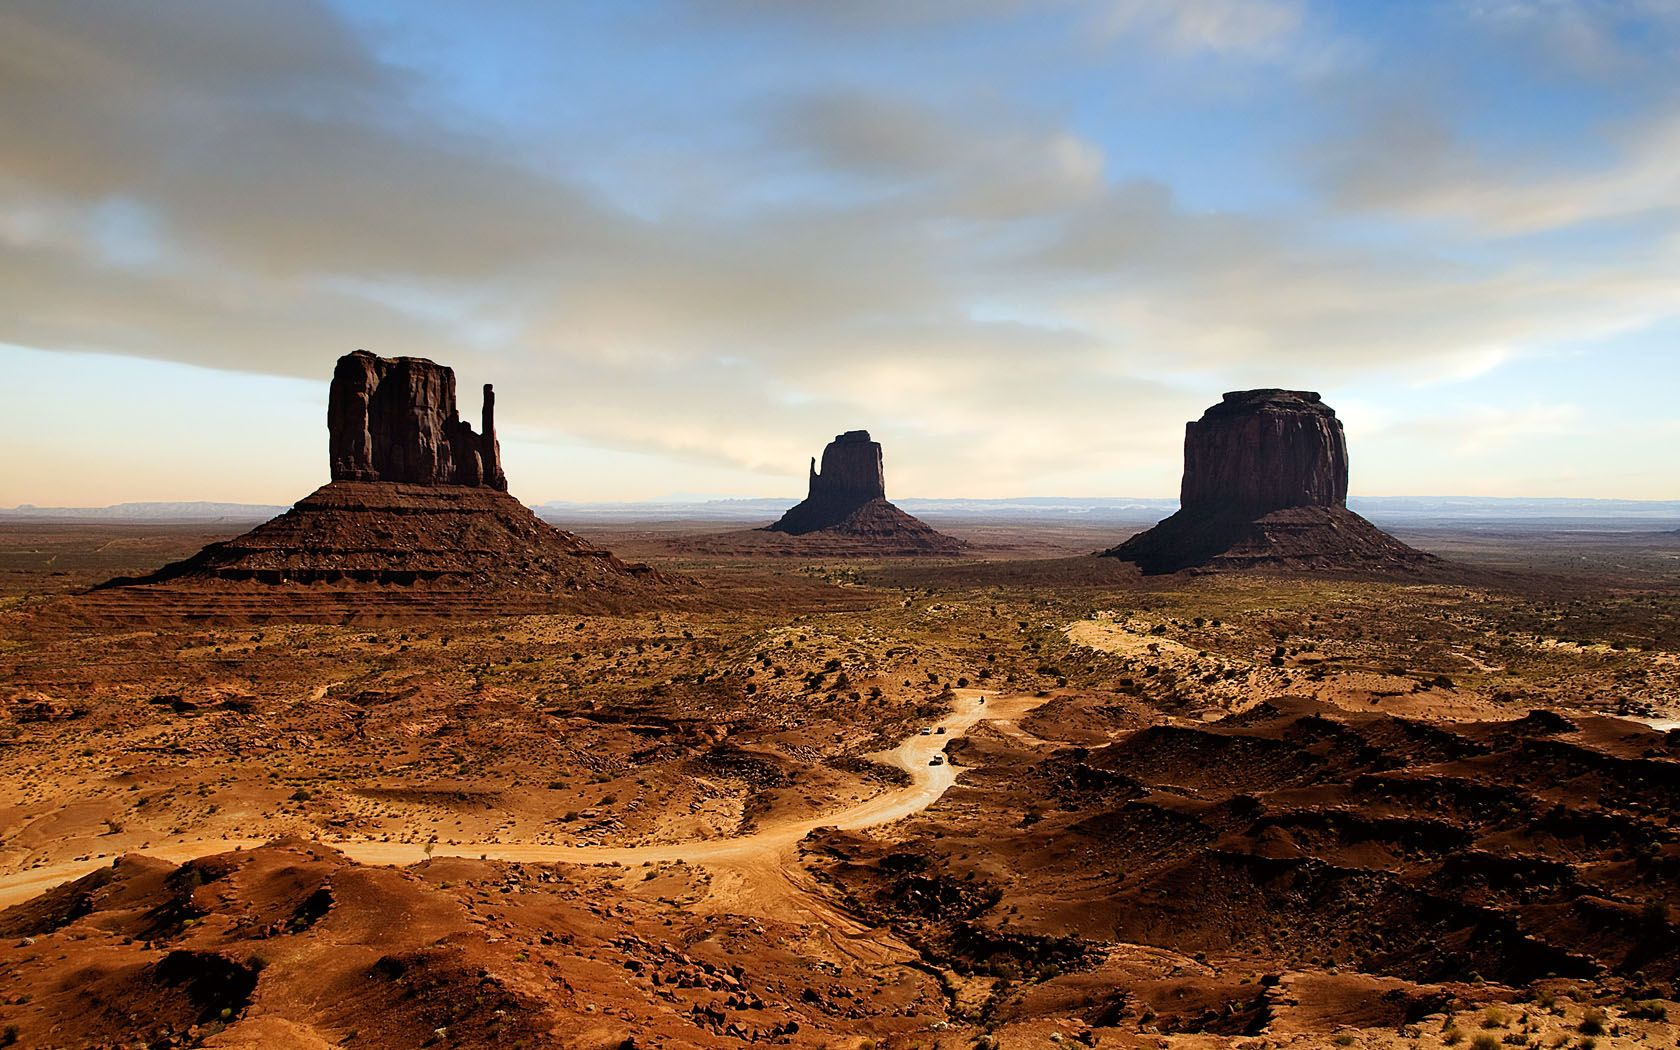 Hd Wallpapers 1080p Cowboys Wild West Monument Valley 533624